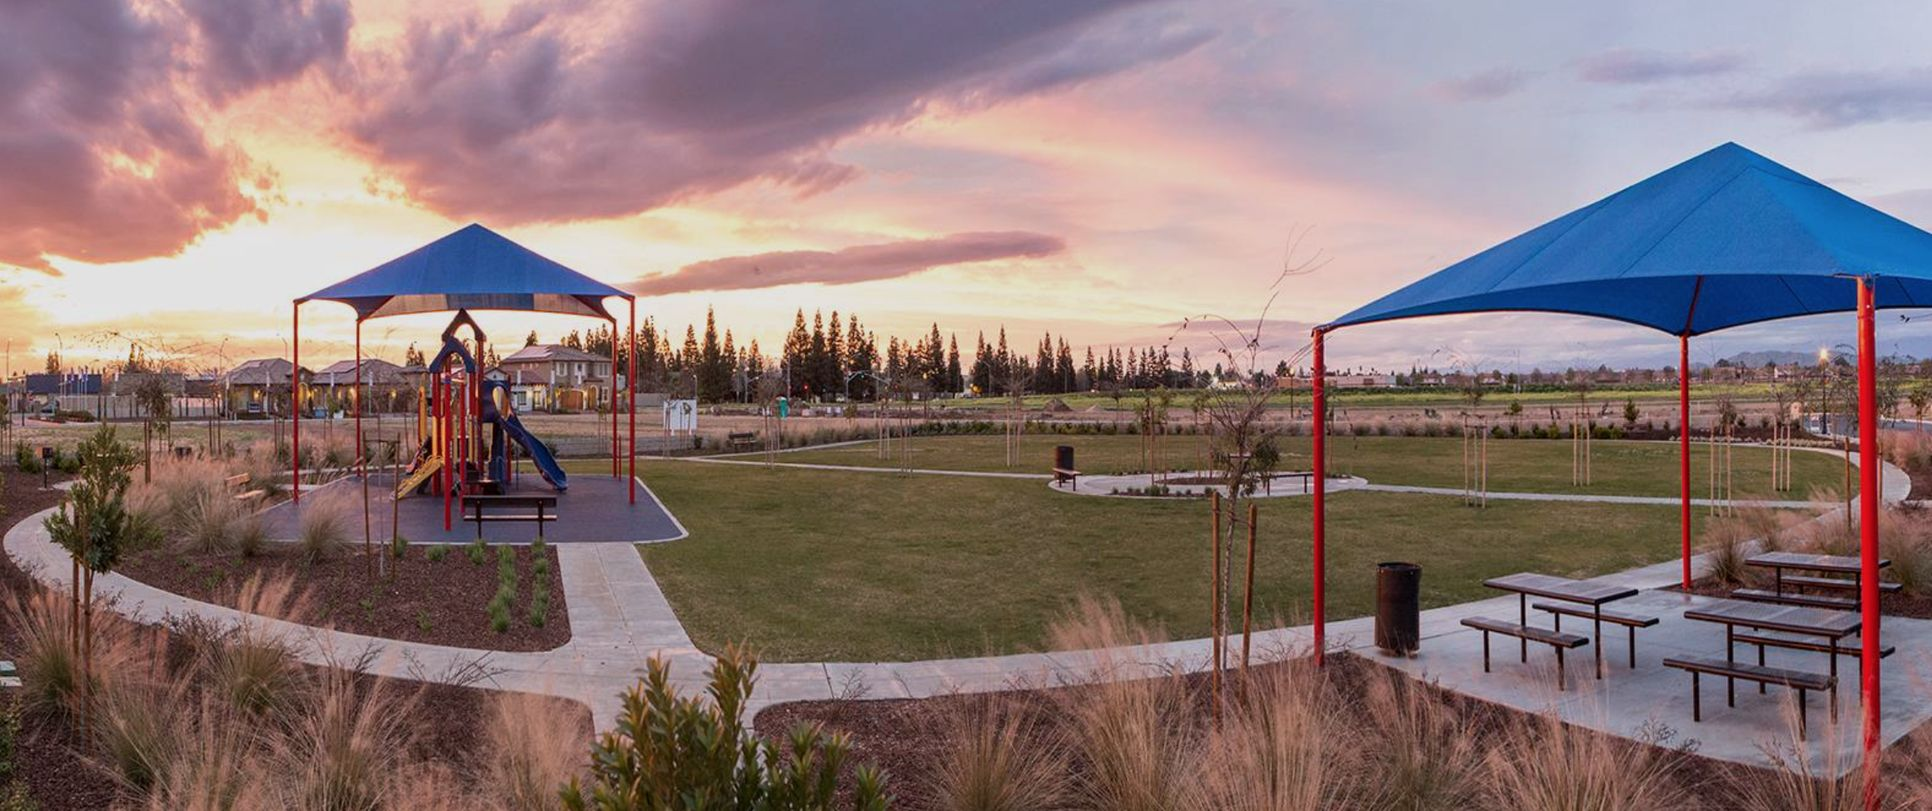 Community Park:Community Park in our Belterra neighborhood.